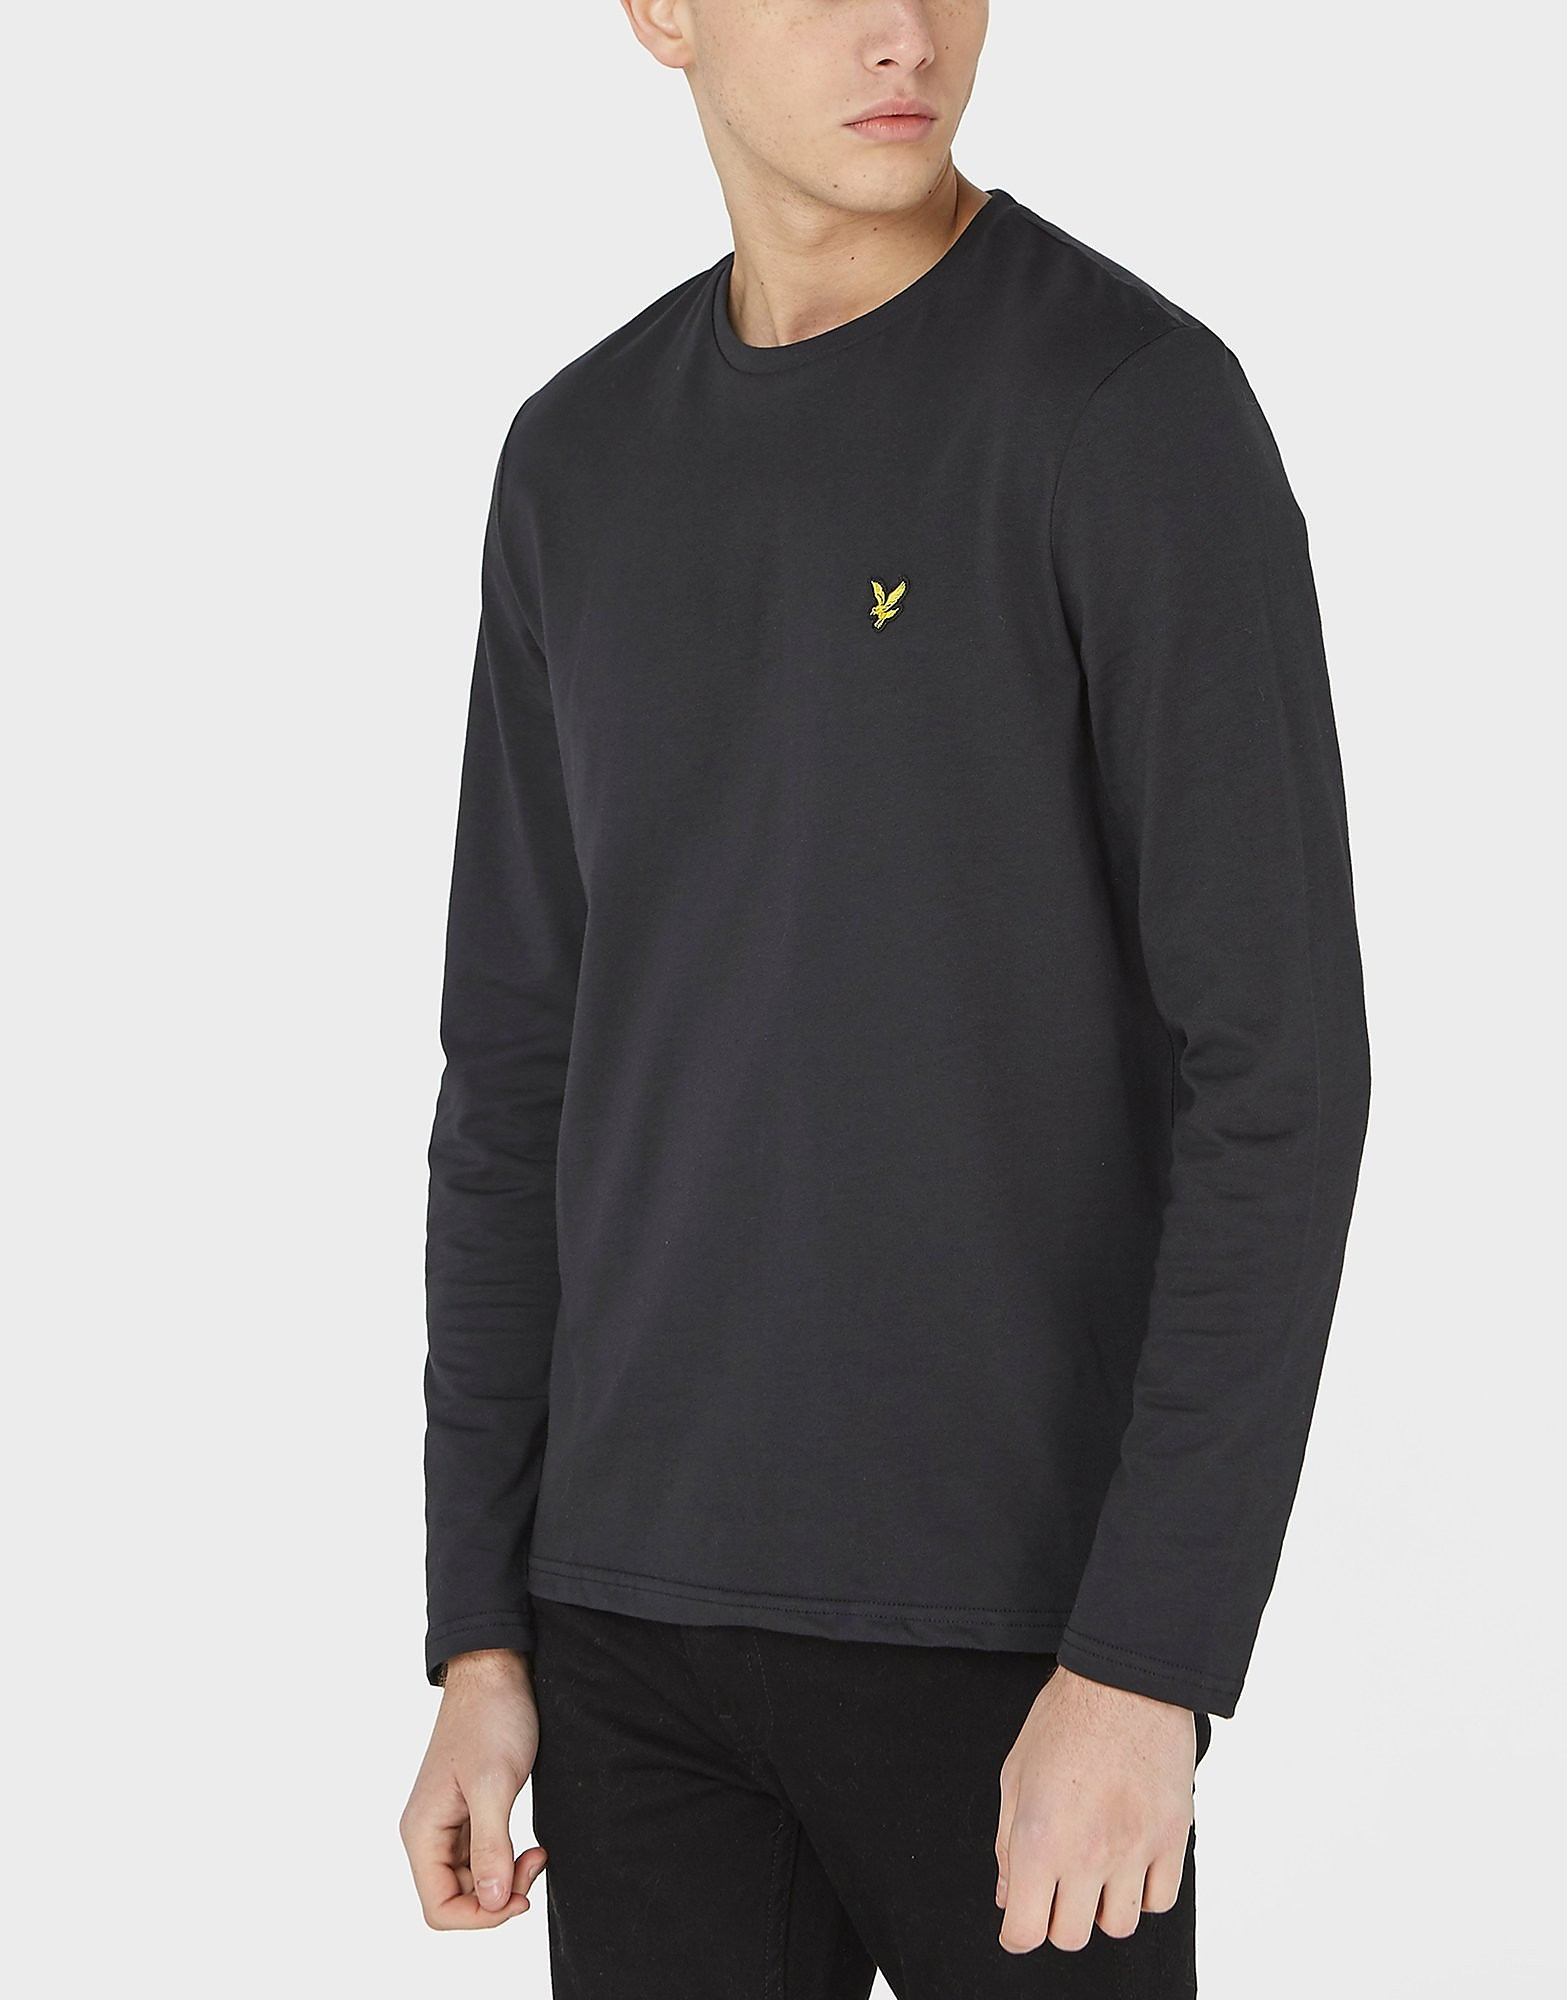 Lyle & Scott Classic Long Sleeve TShirt  Black Black